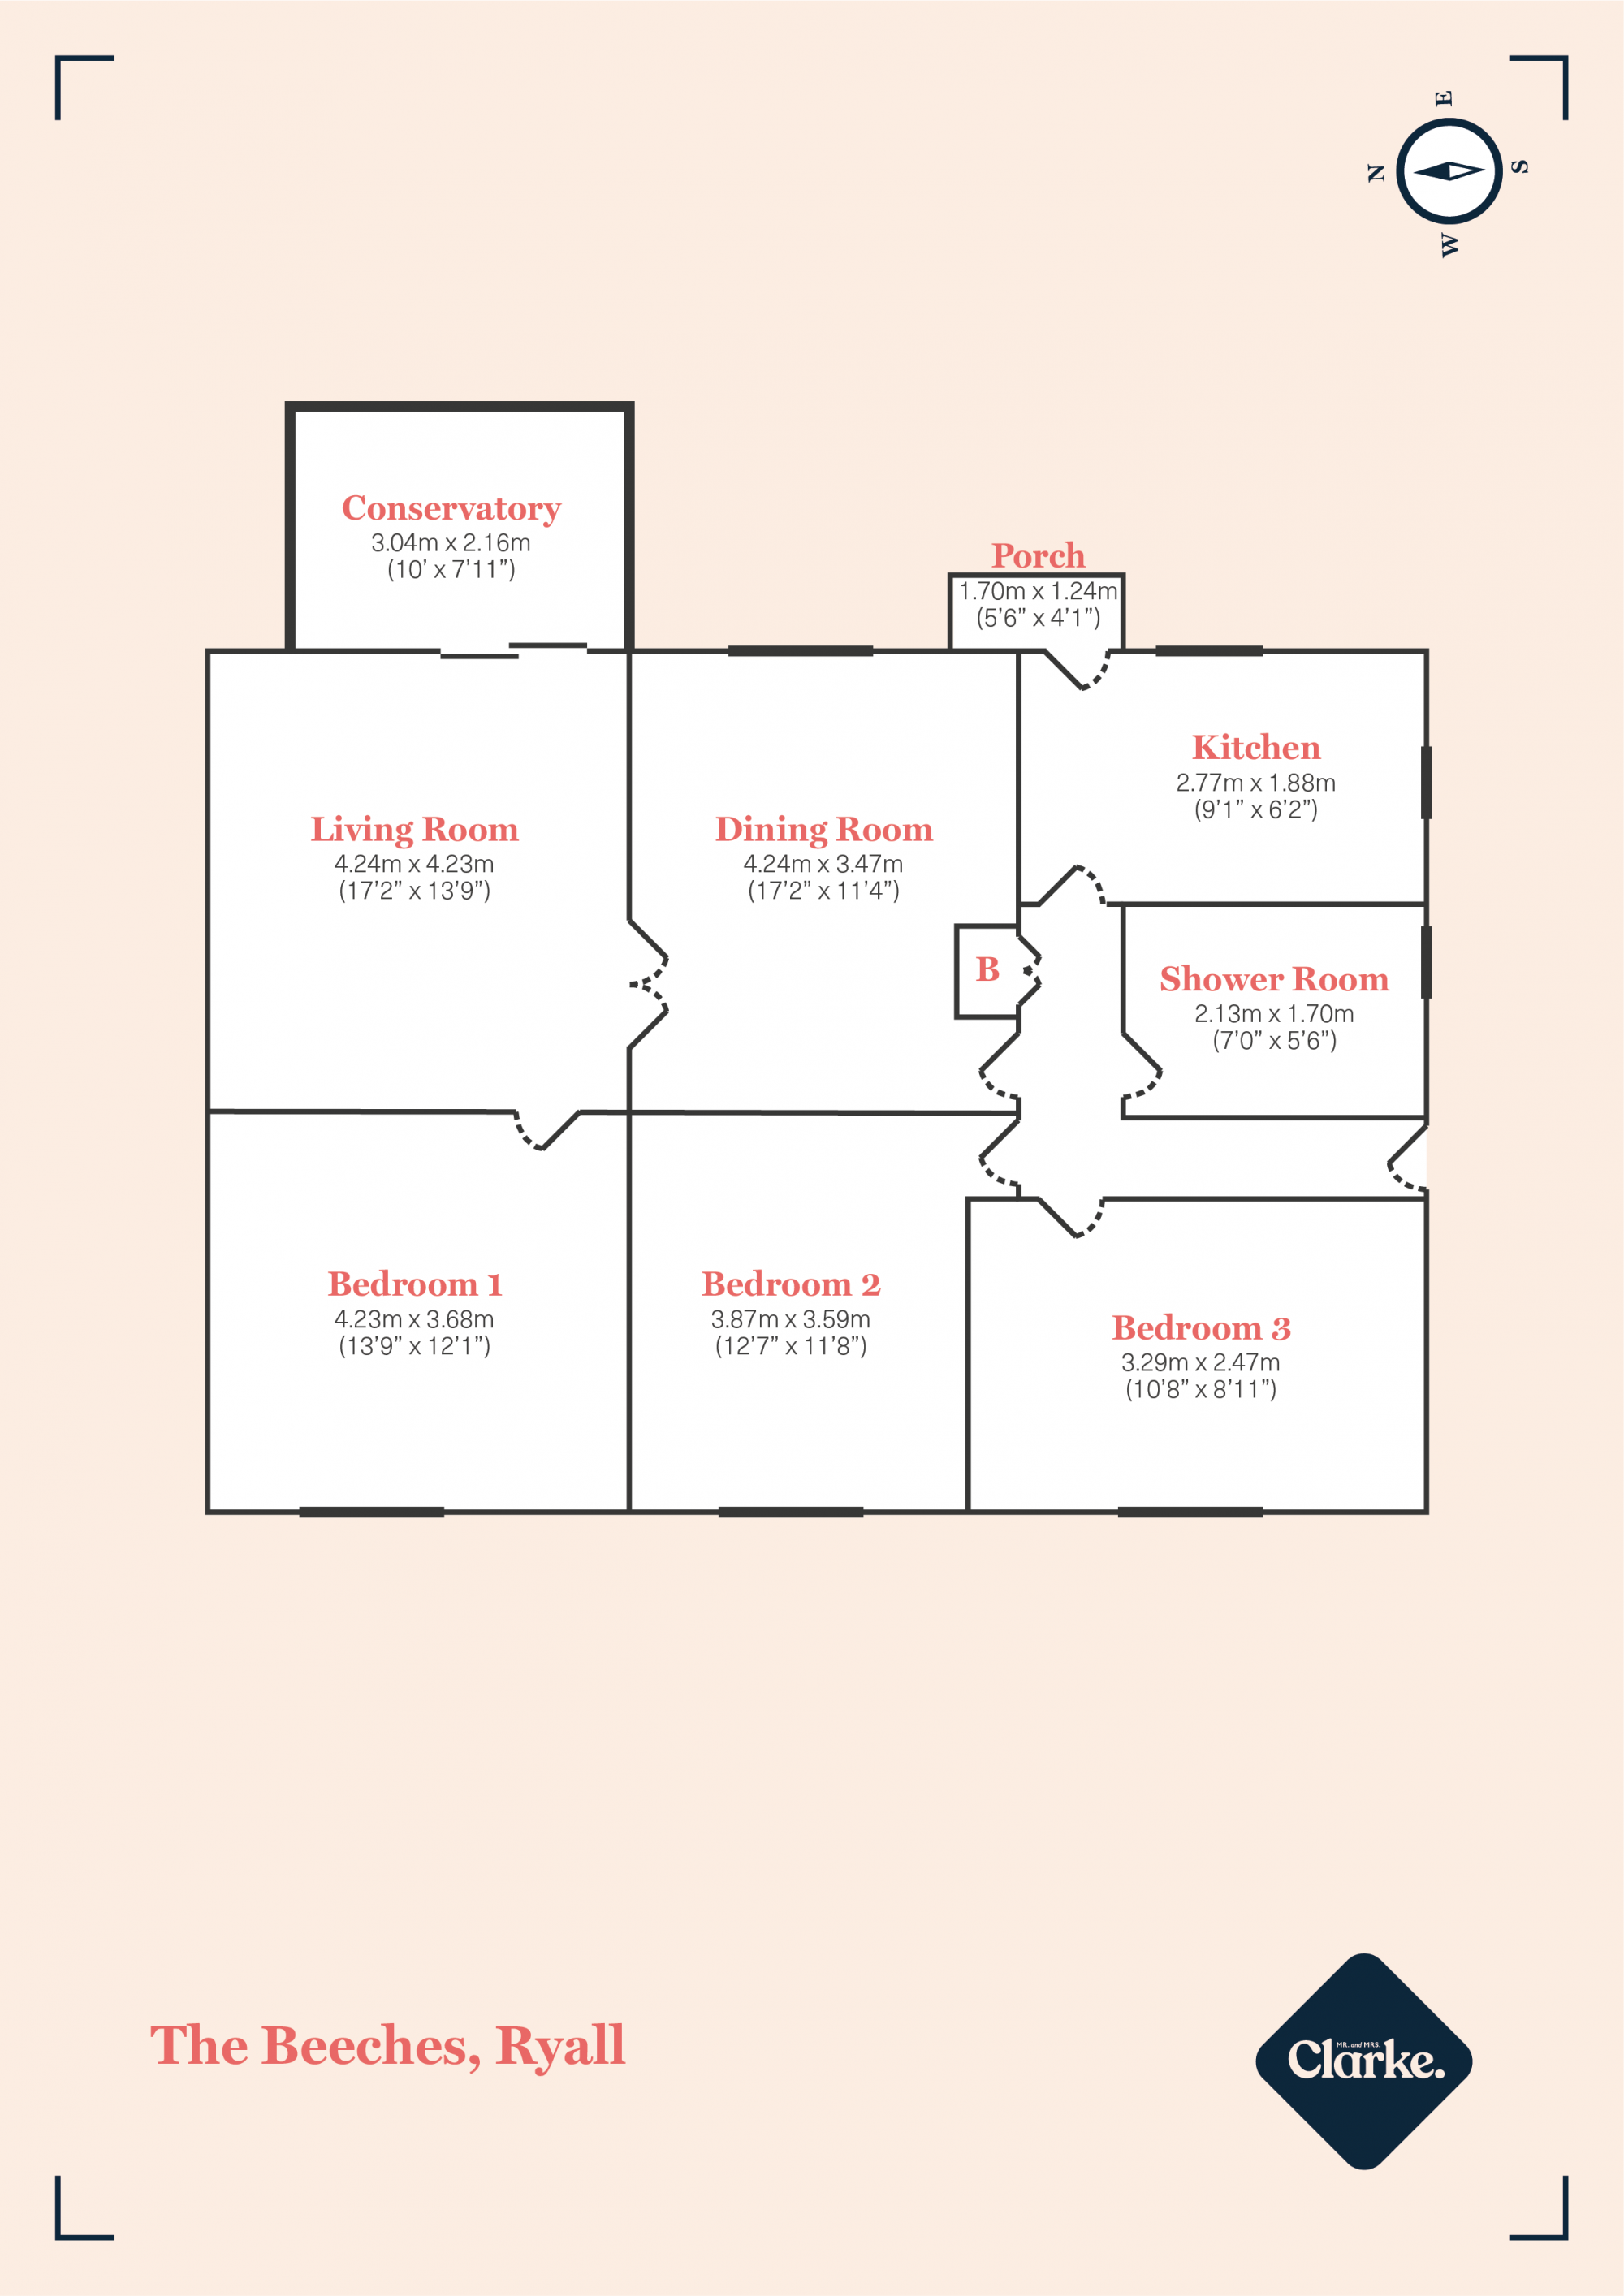 The Beeches, Ryall. Floorplan.